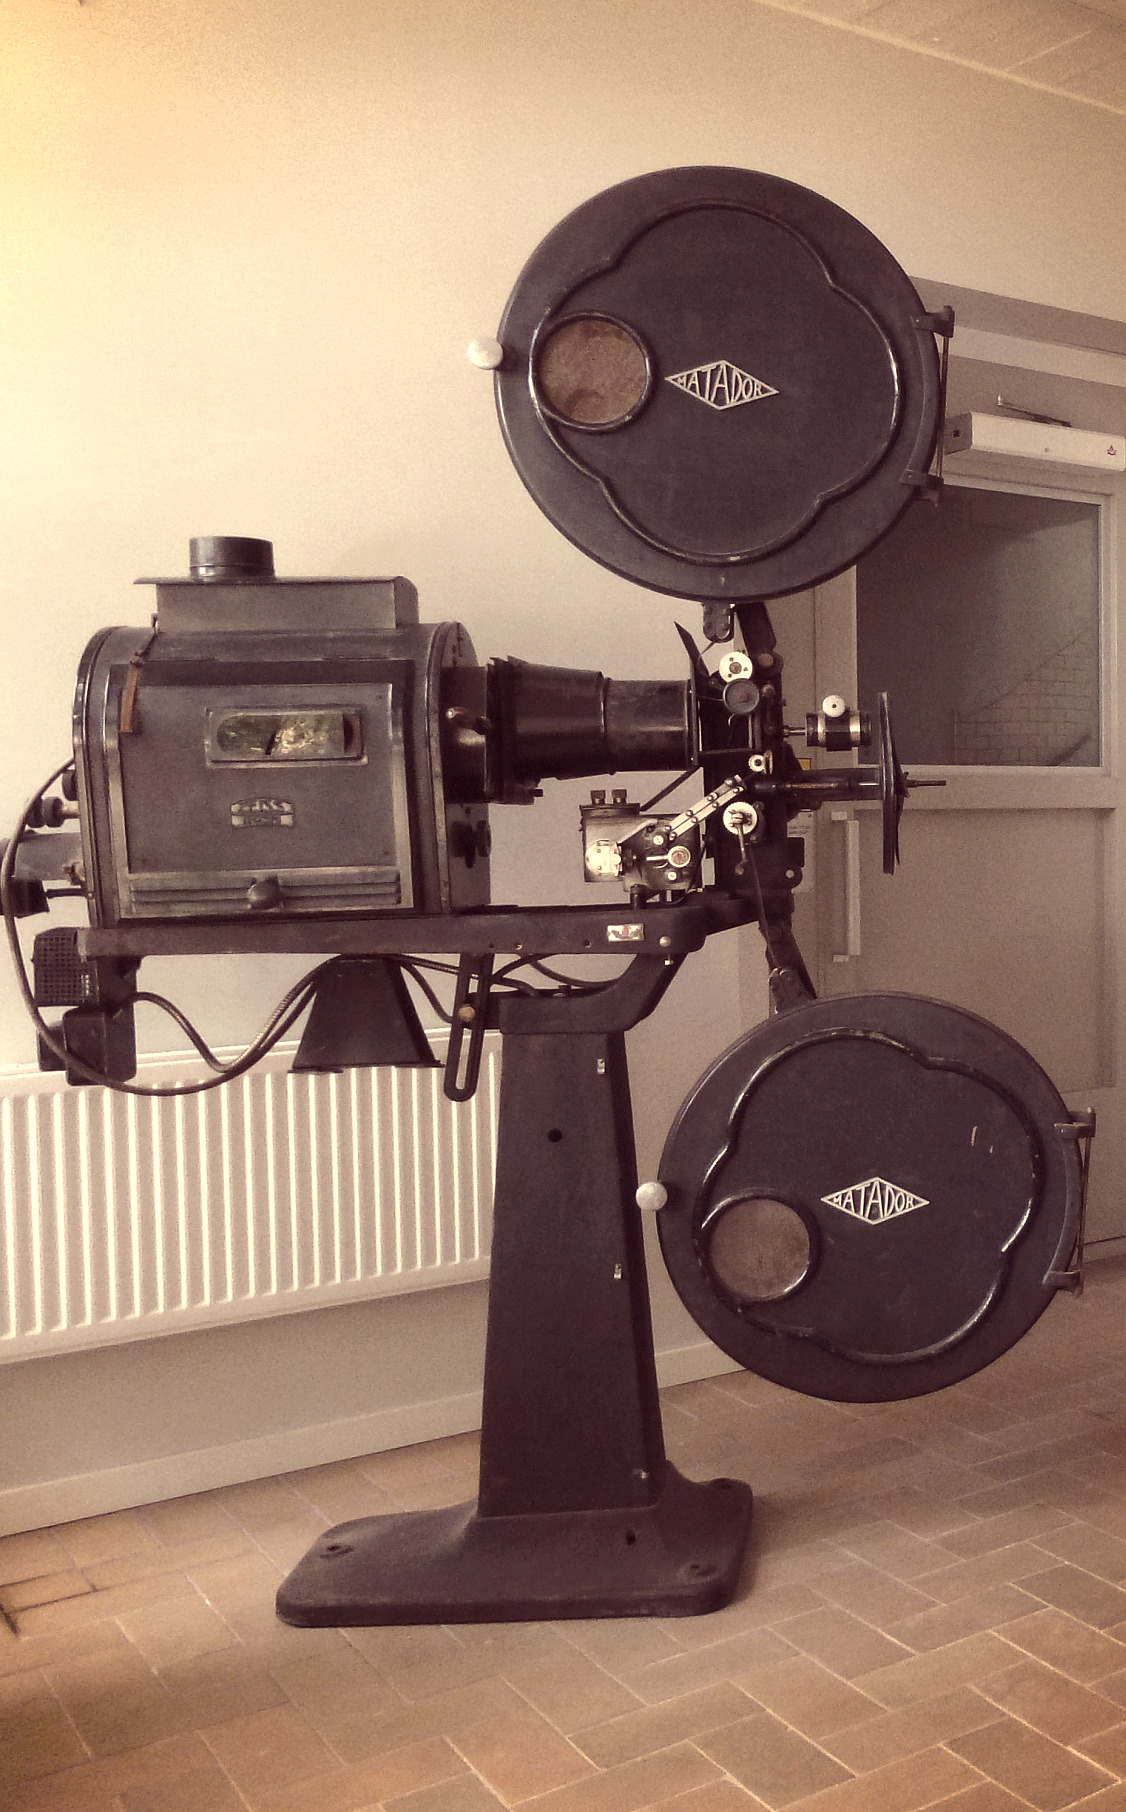 Old film projector of the brand Matador.